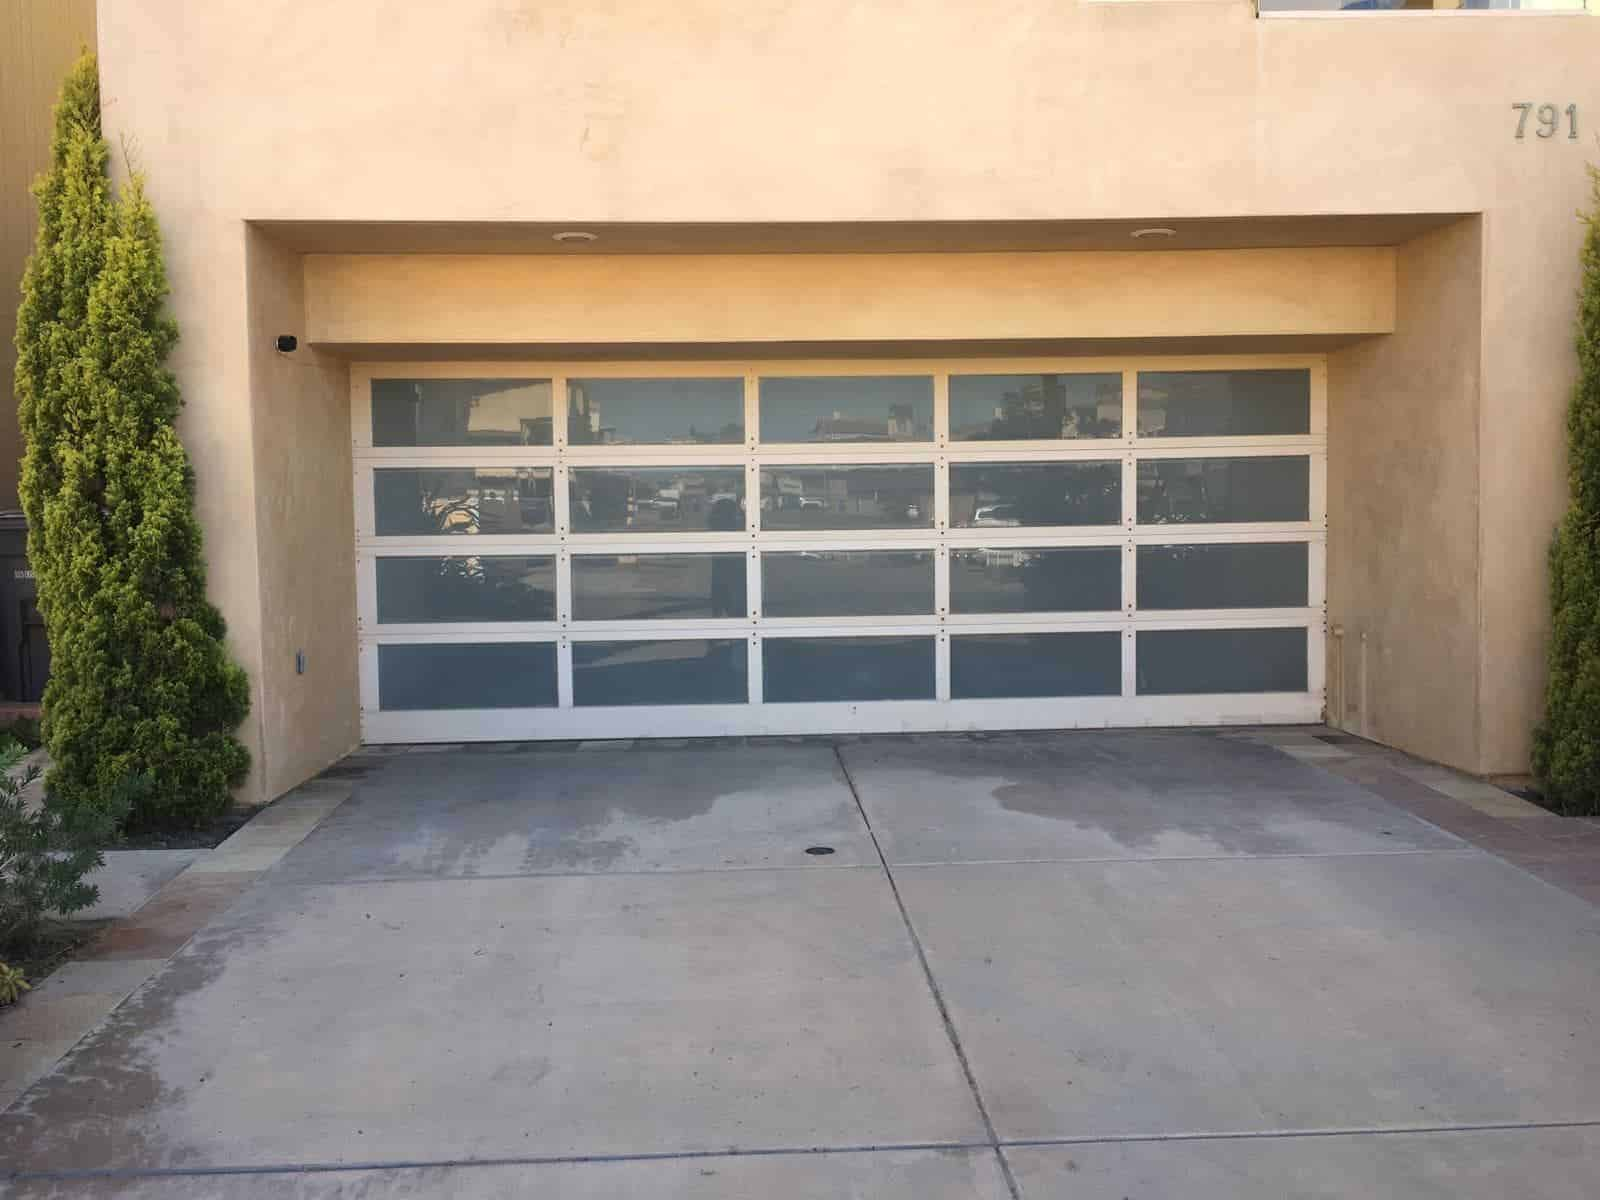 Taft Mosswood Garage repair & replacement